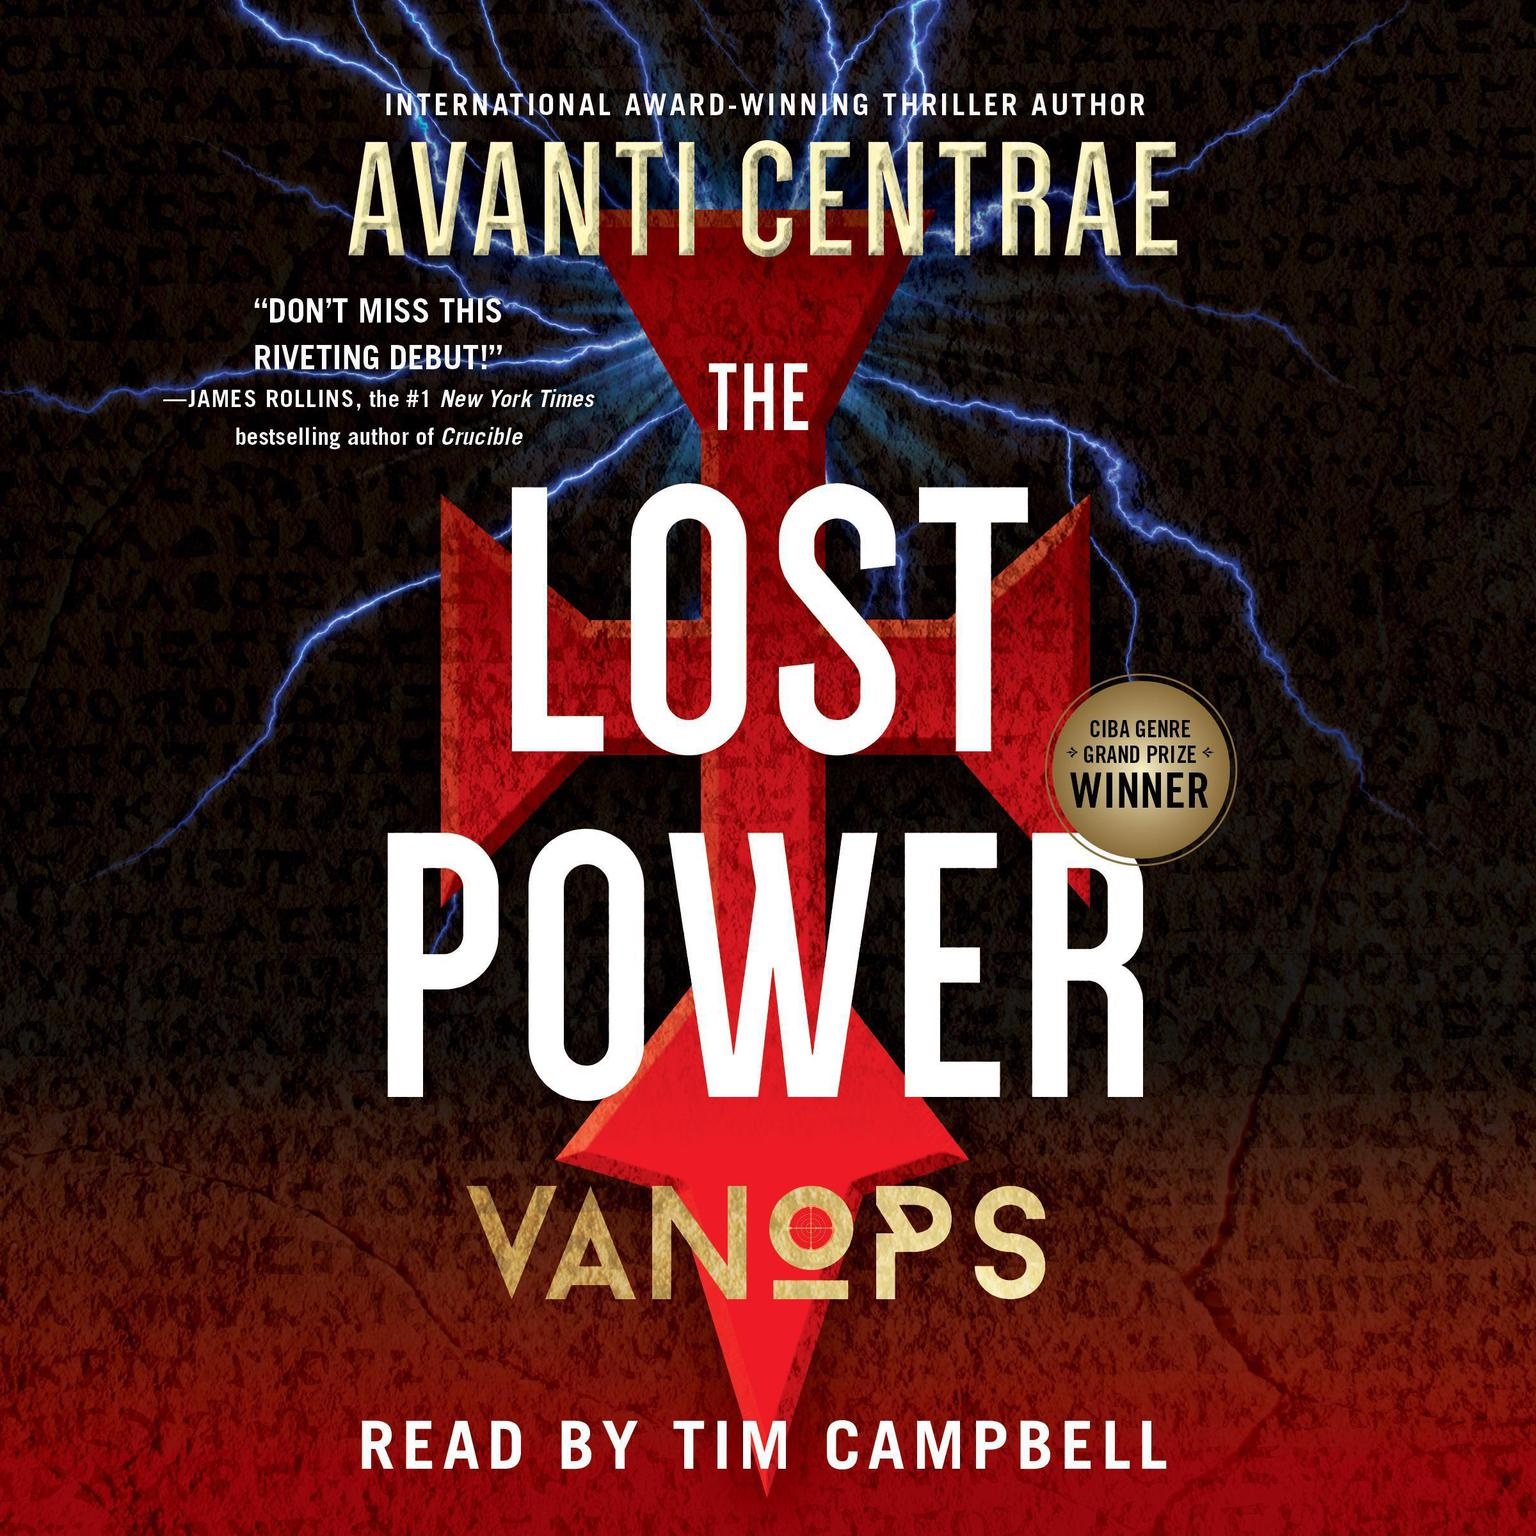 Printable VanOps: The Lost Power Audiobook Cover Art